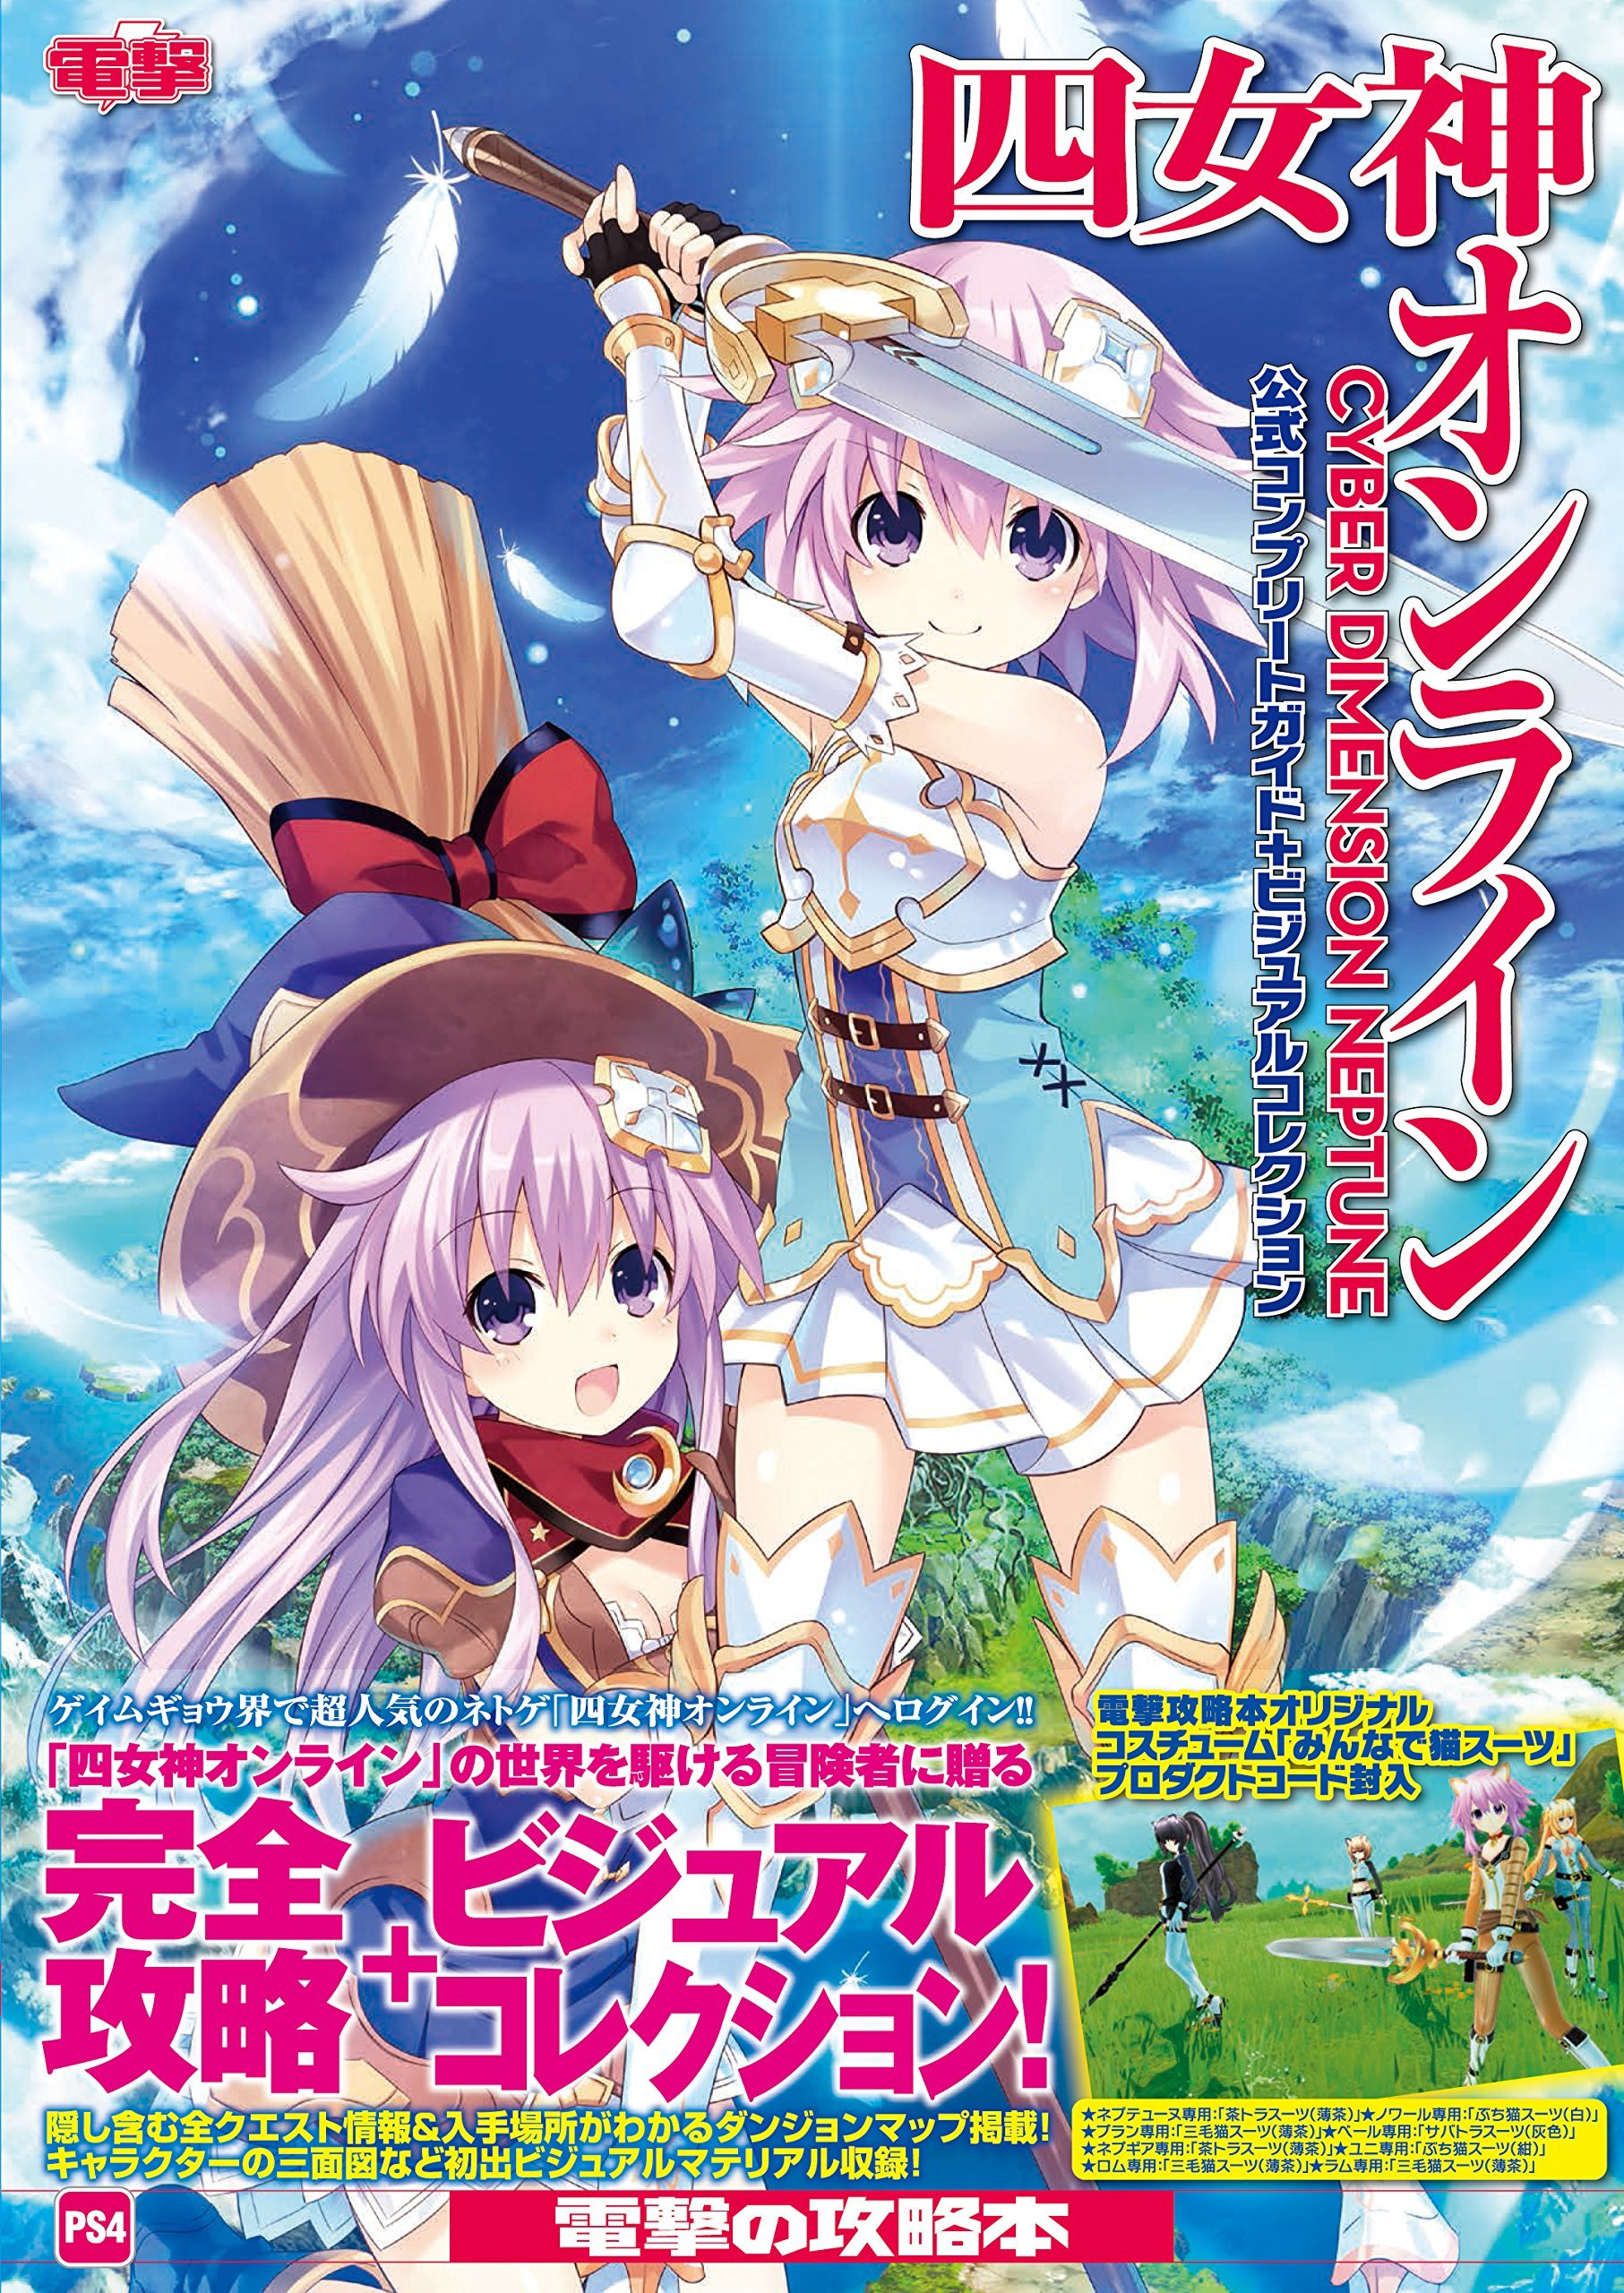 Cyberdimension Neptunia: 4 Goddesses Online - Official Complete Guide + Visual Collection